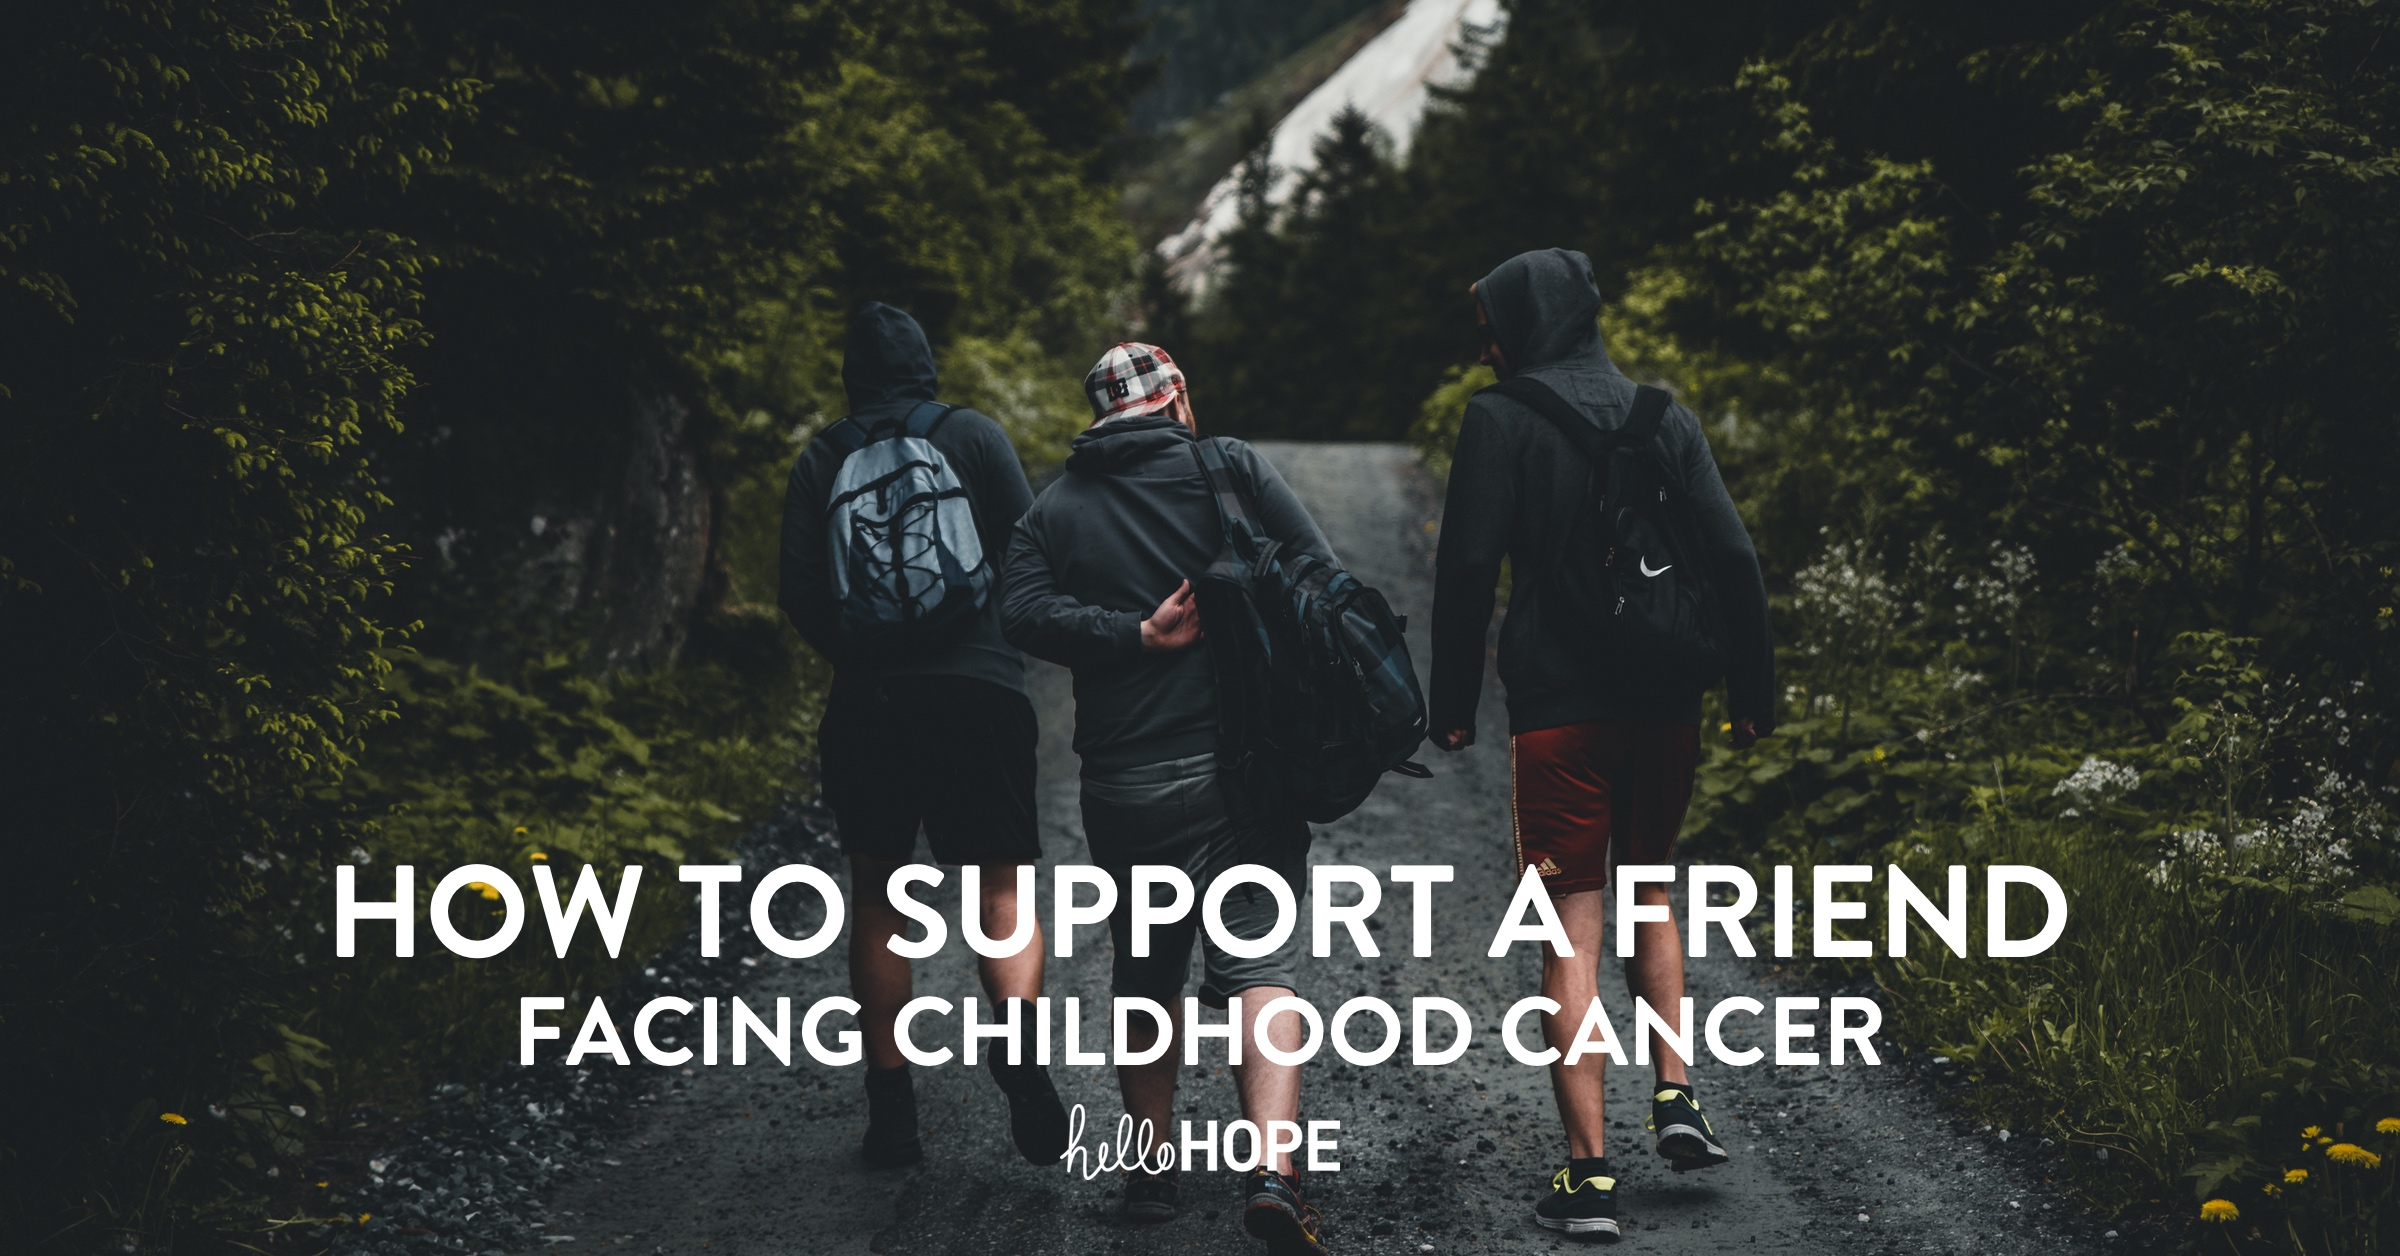 Friends walking together on trail | How to Support a Friend Facing Childhood Cancer, a Q&A with Chris Woodruff | helloHOPE